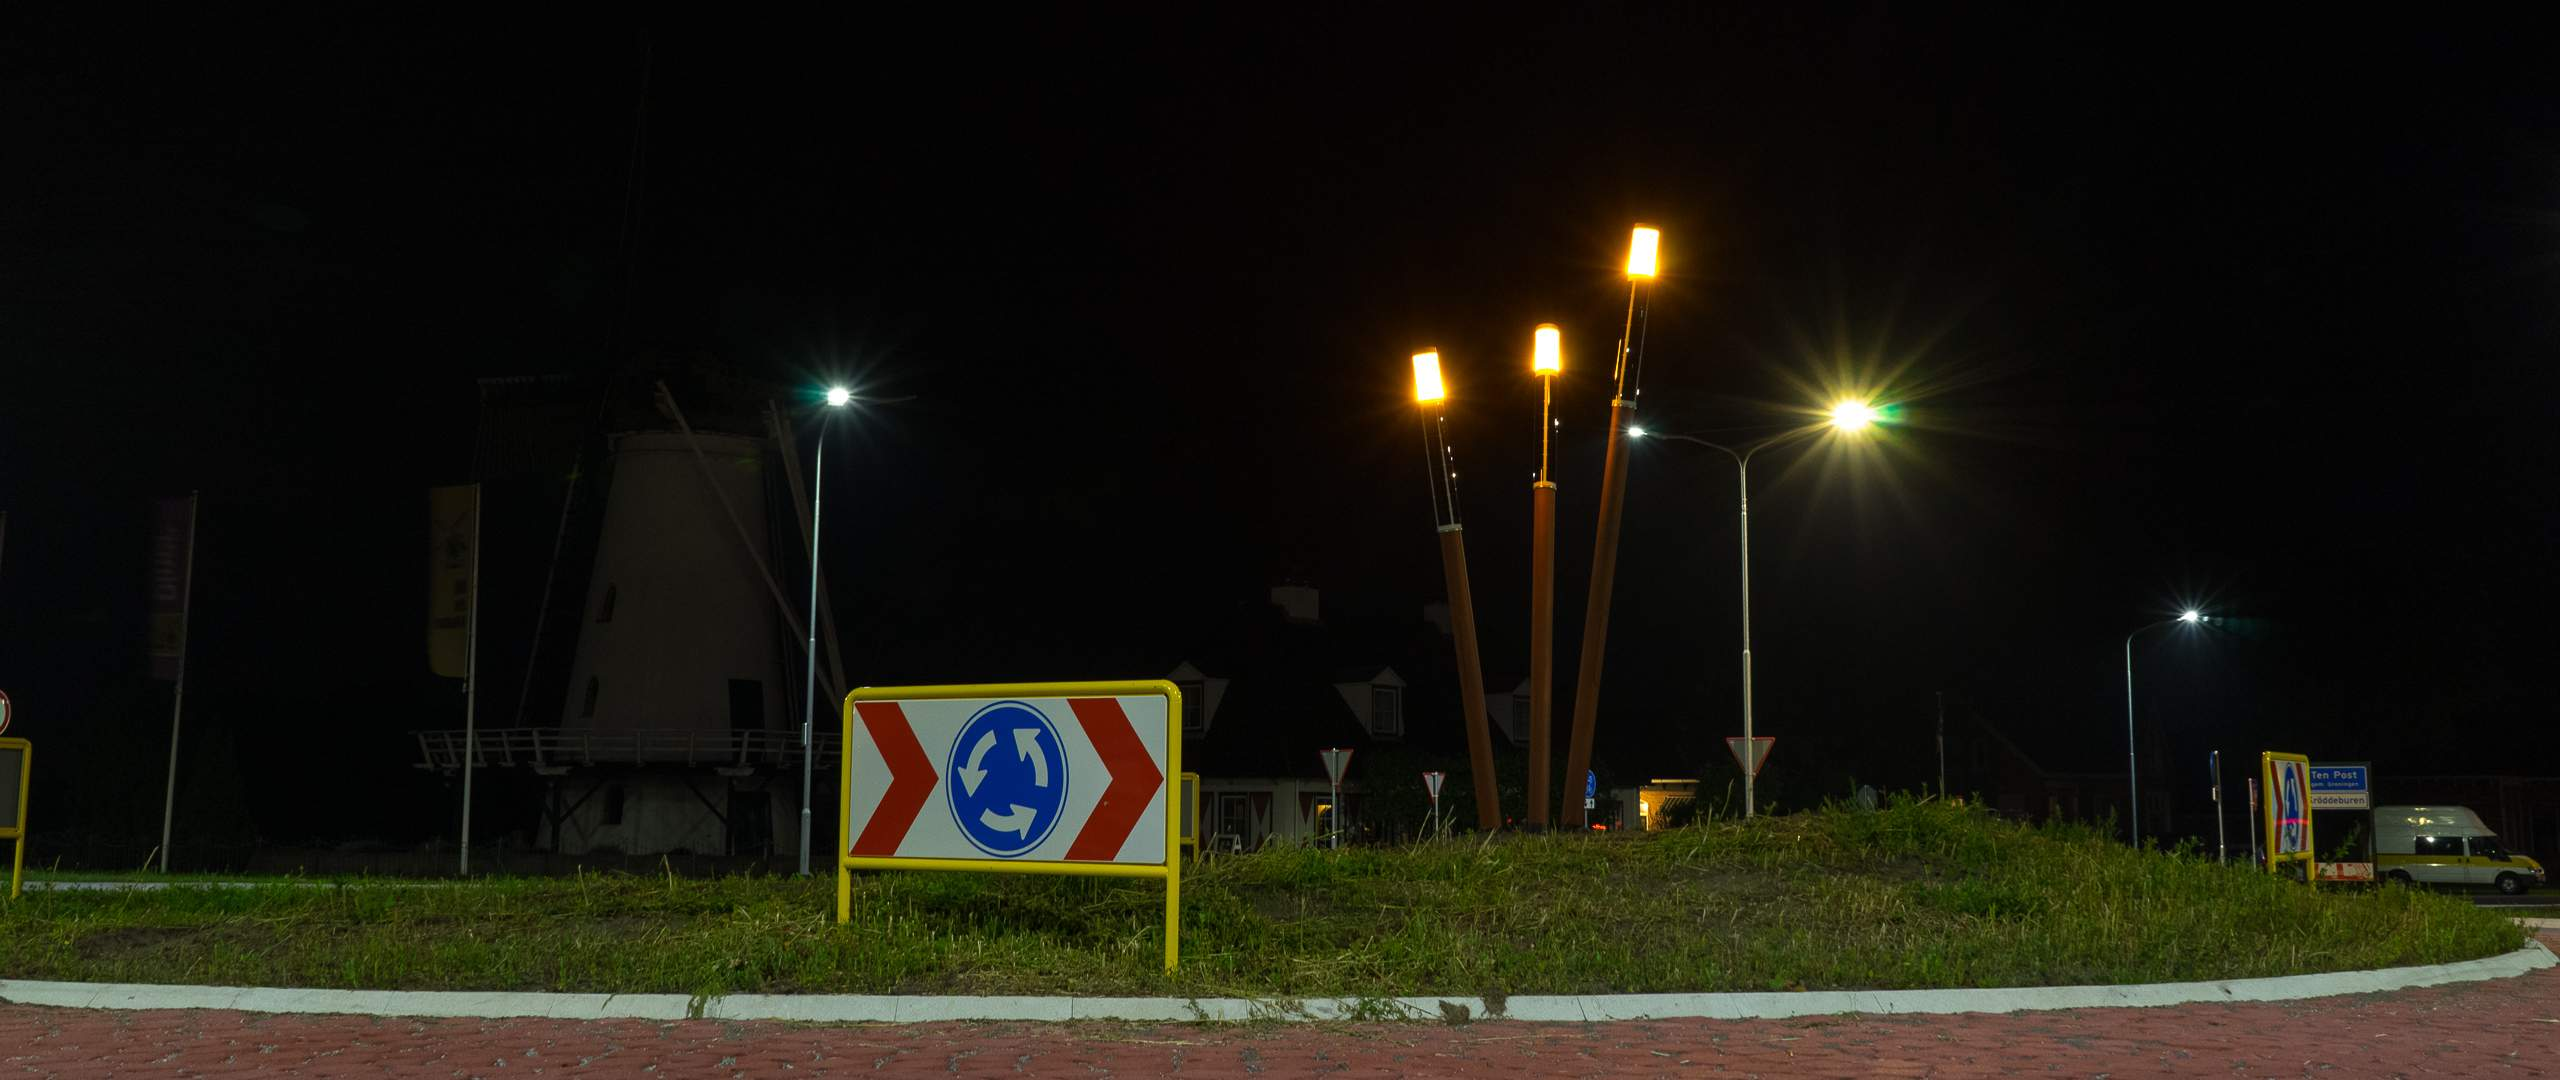 Soluxio design solar lights at roundabouts in Groningen